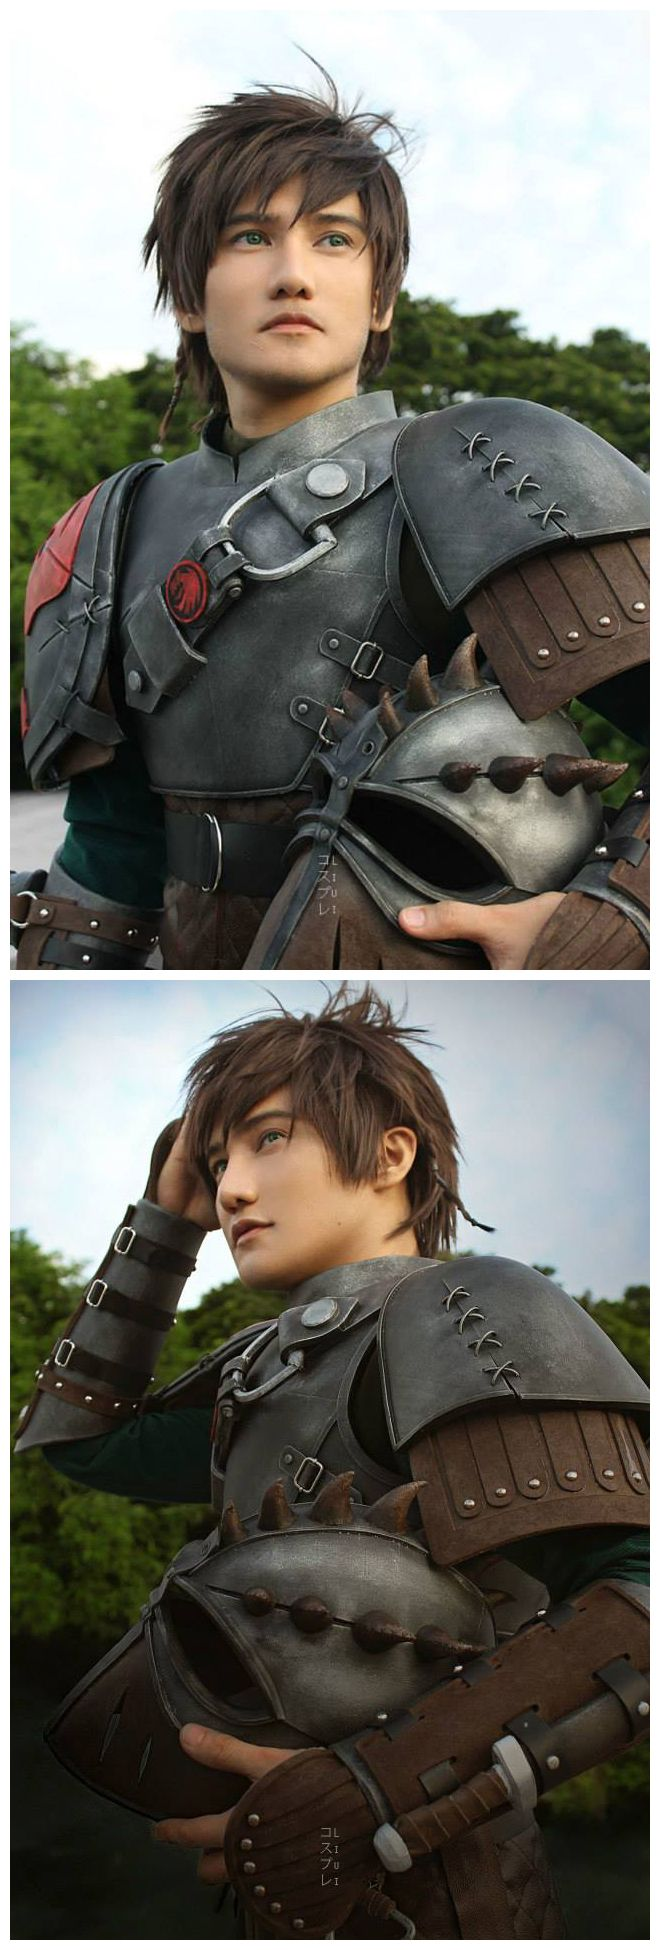 Hiccup (How To Train Your Dragon 2) Cosplay. hot damn this is one of the best cosplays I've ever seen.